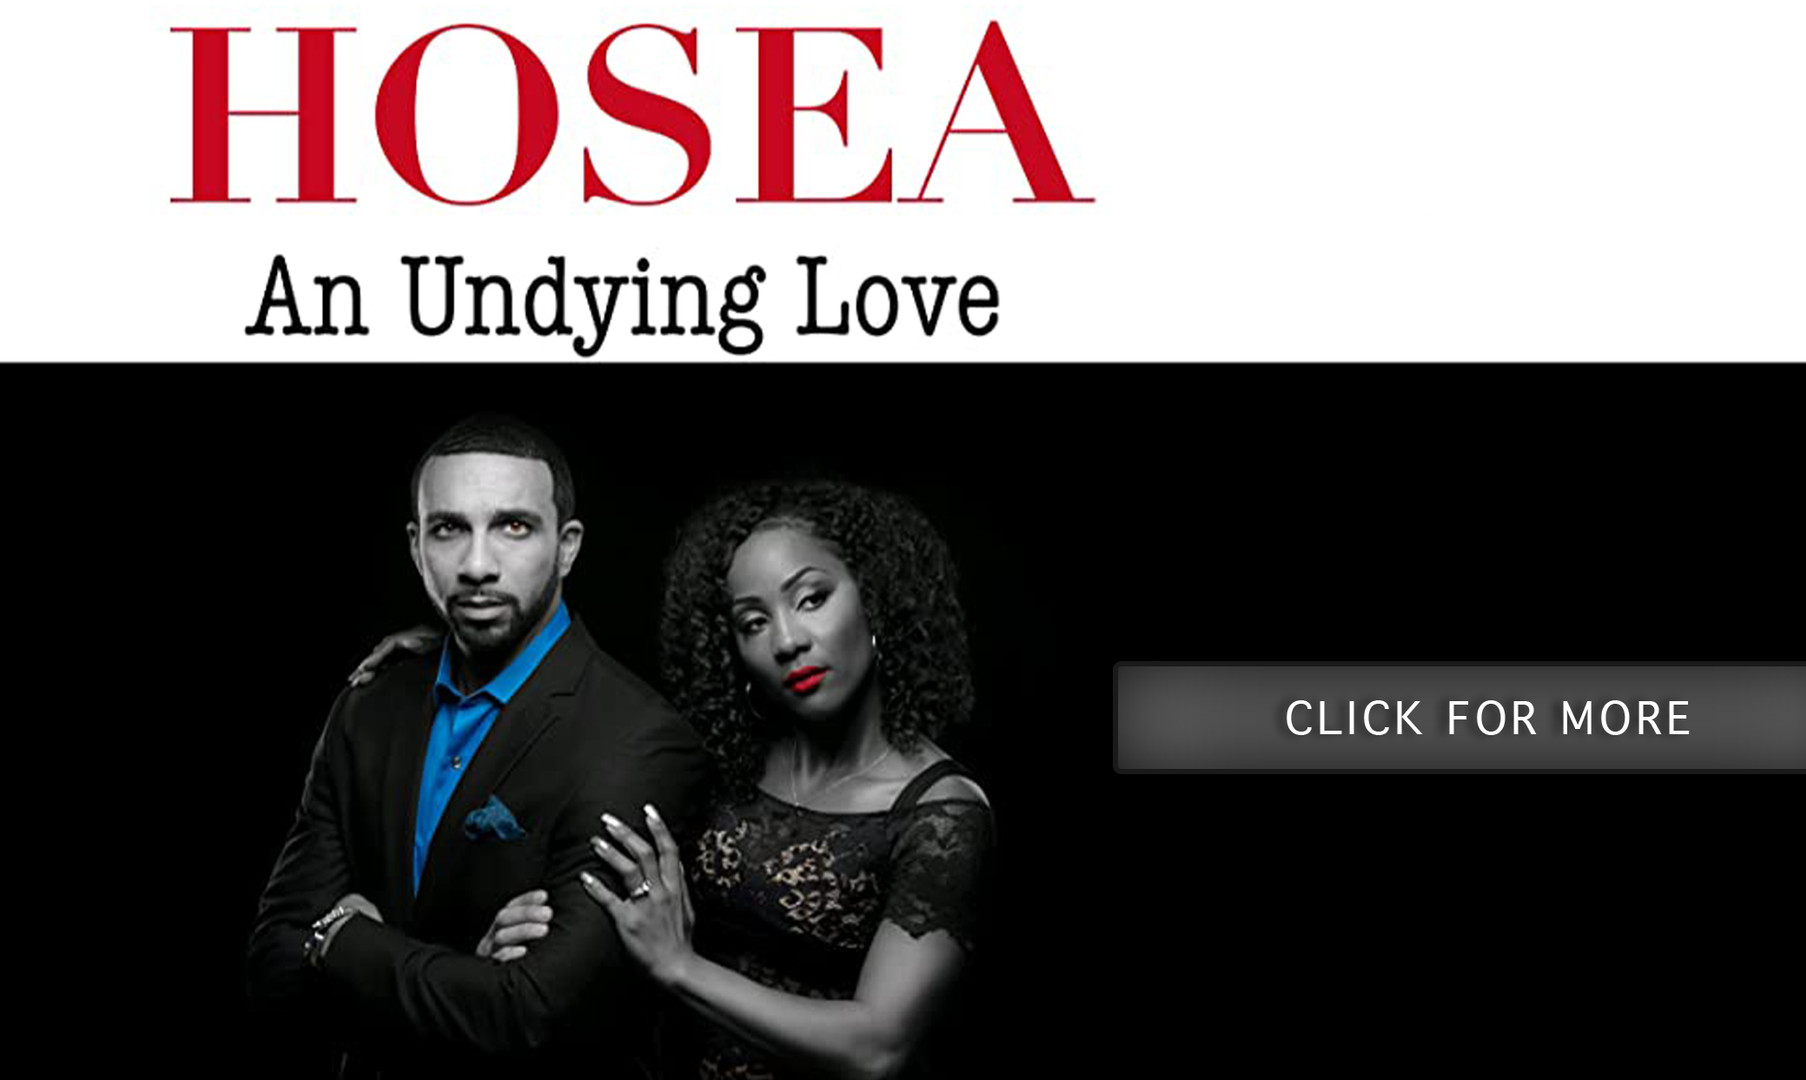 Hosea: An Undying Love